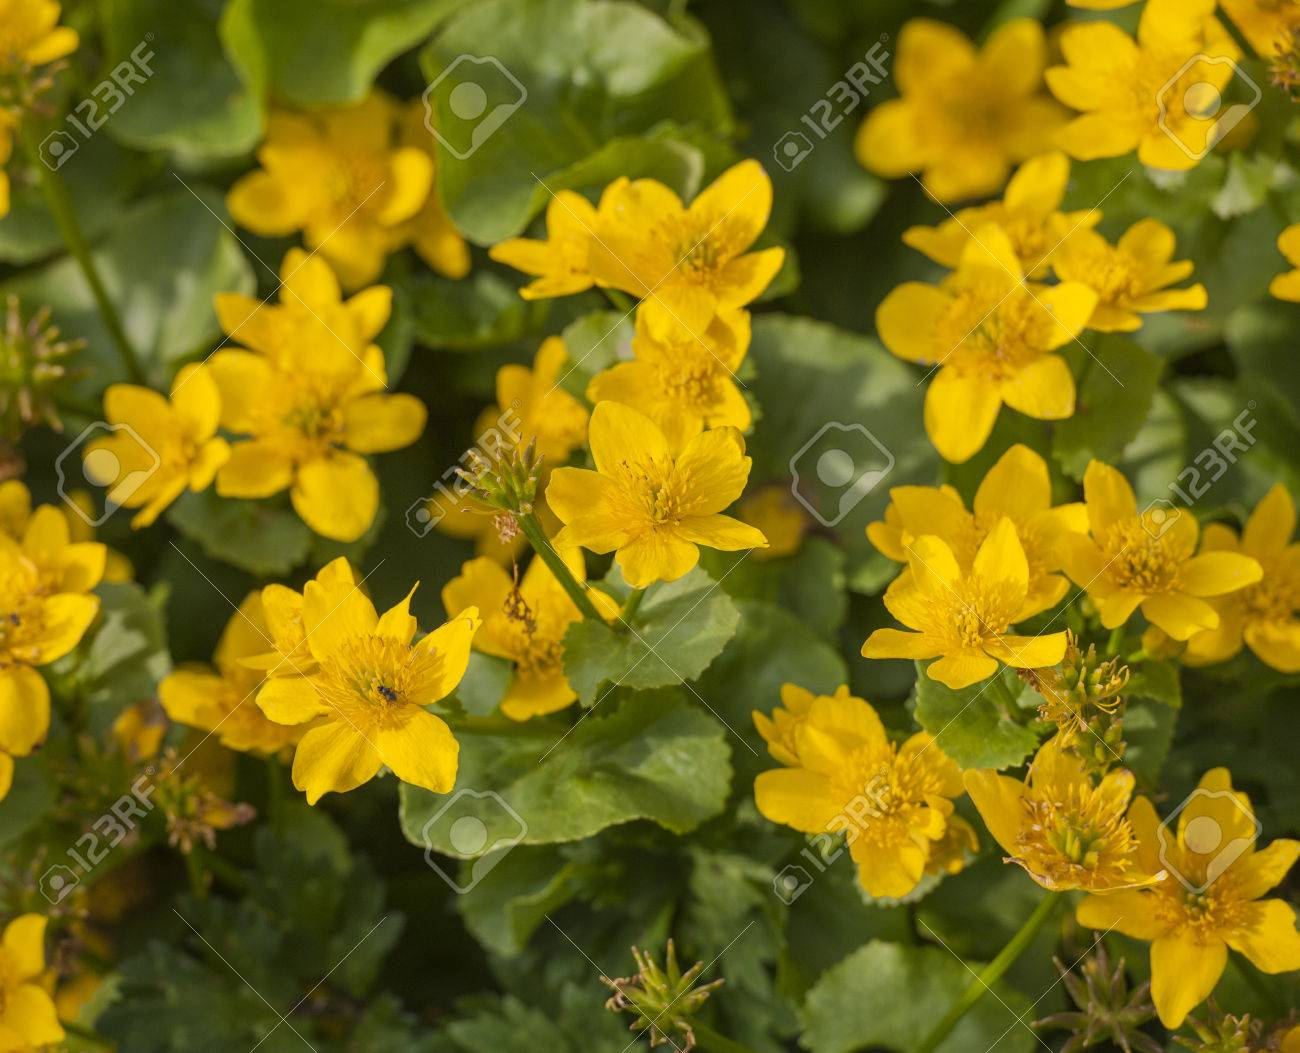 Closeup Detail Of Yellow Flowers On Marsh Marigold Kingcup Plant